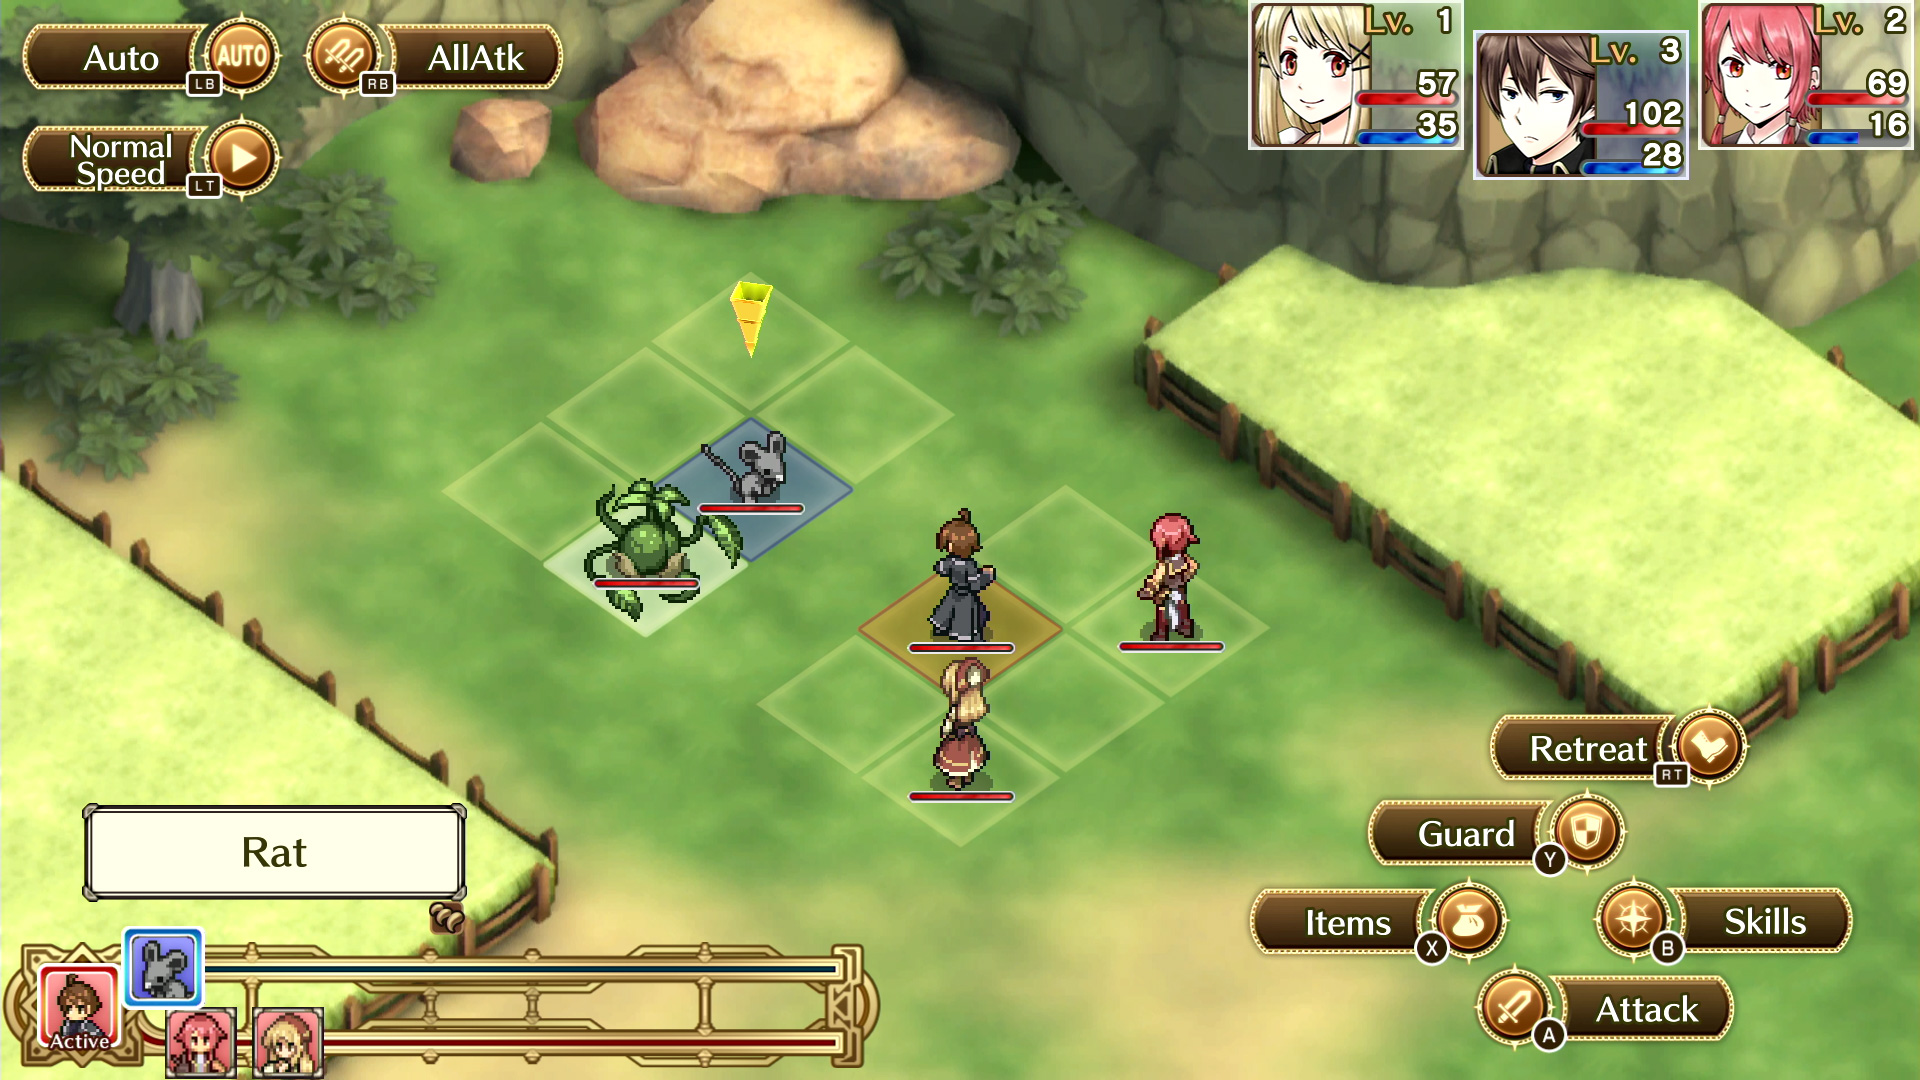 Marenian Tavern Story: Patty and the Hungry God for iPhone/Android